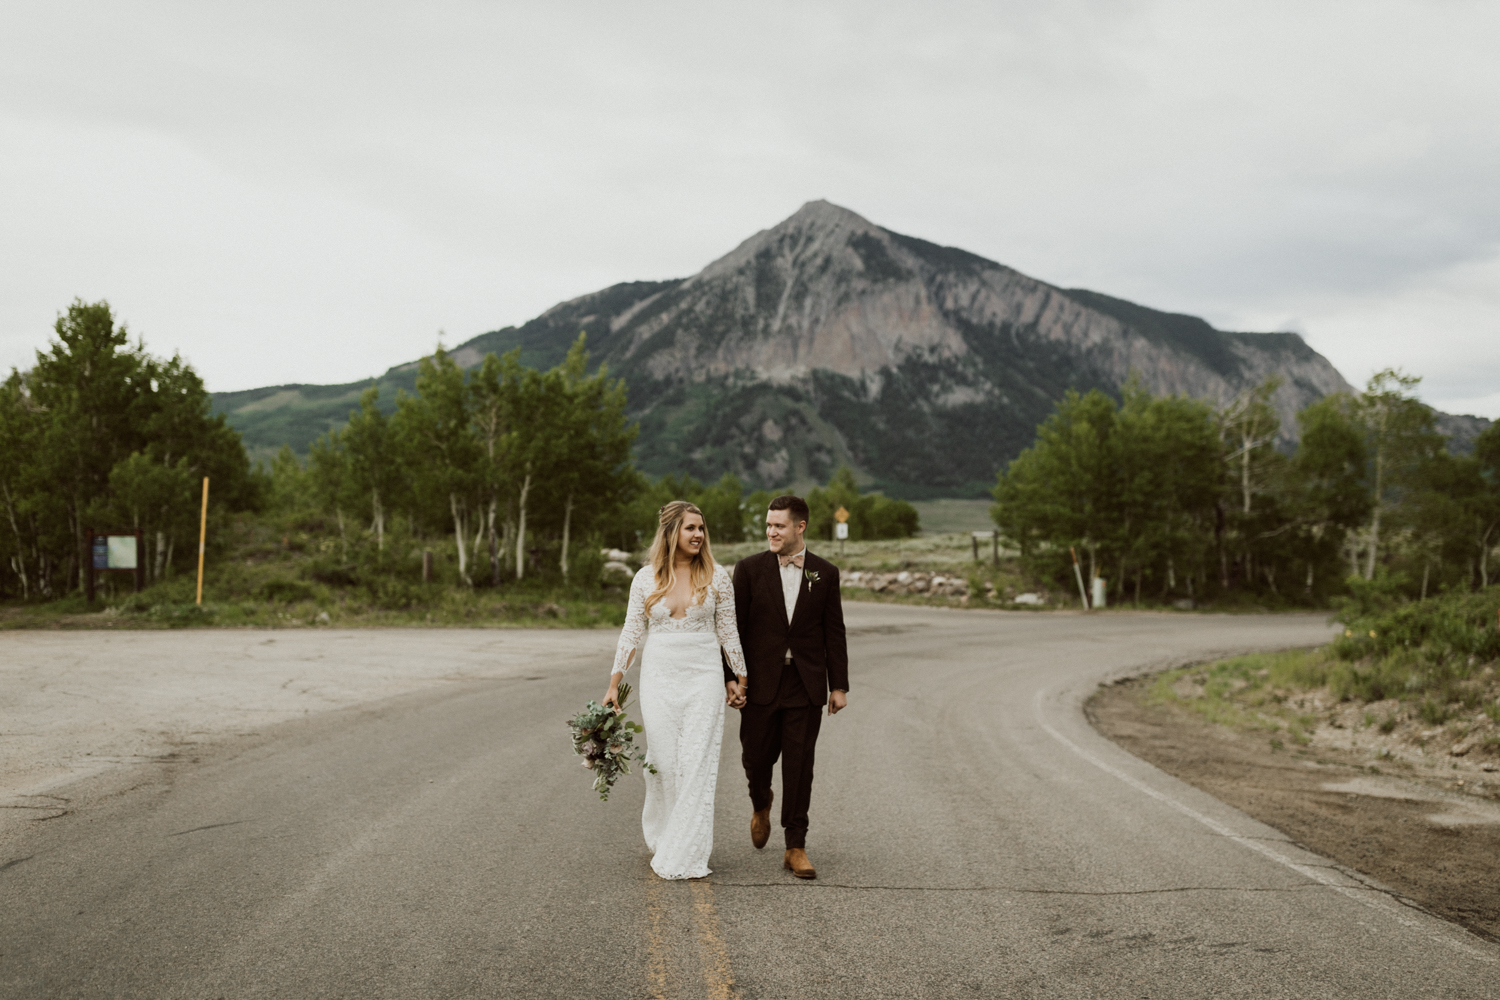 intimate-crested-butte-wedding-116.jpg